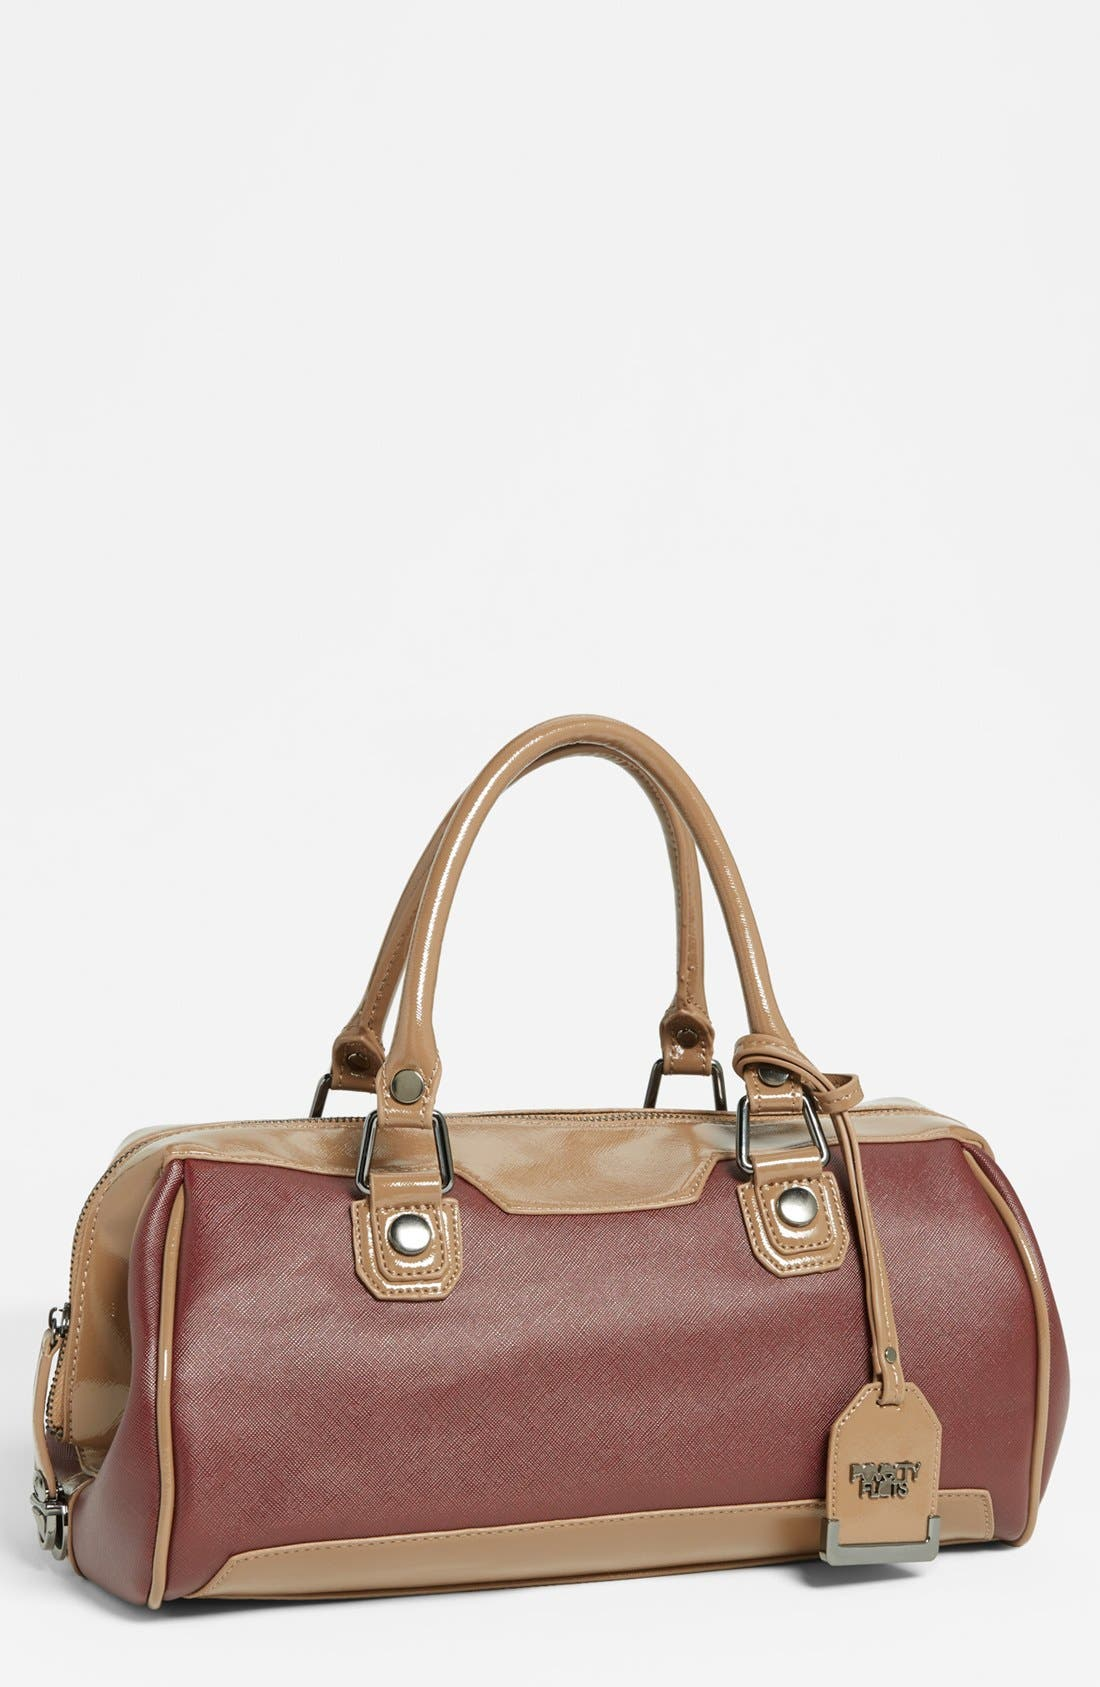 Main Image - POVERTY FLATS by rian 'Shiny & Matte' Faux Leather Satchel, Medium